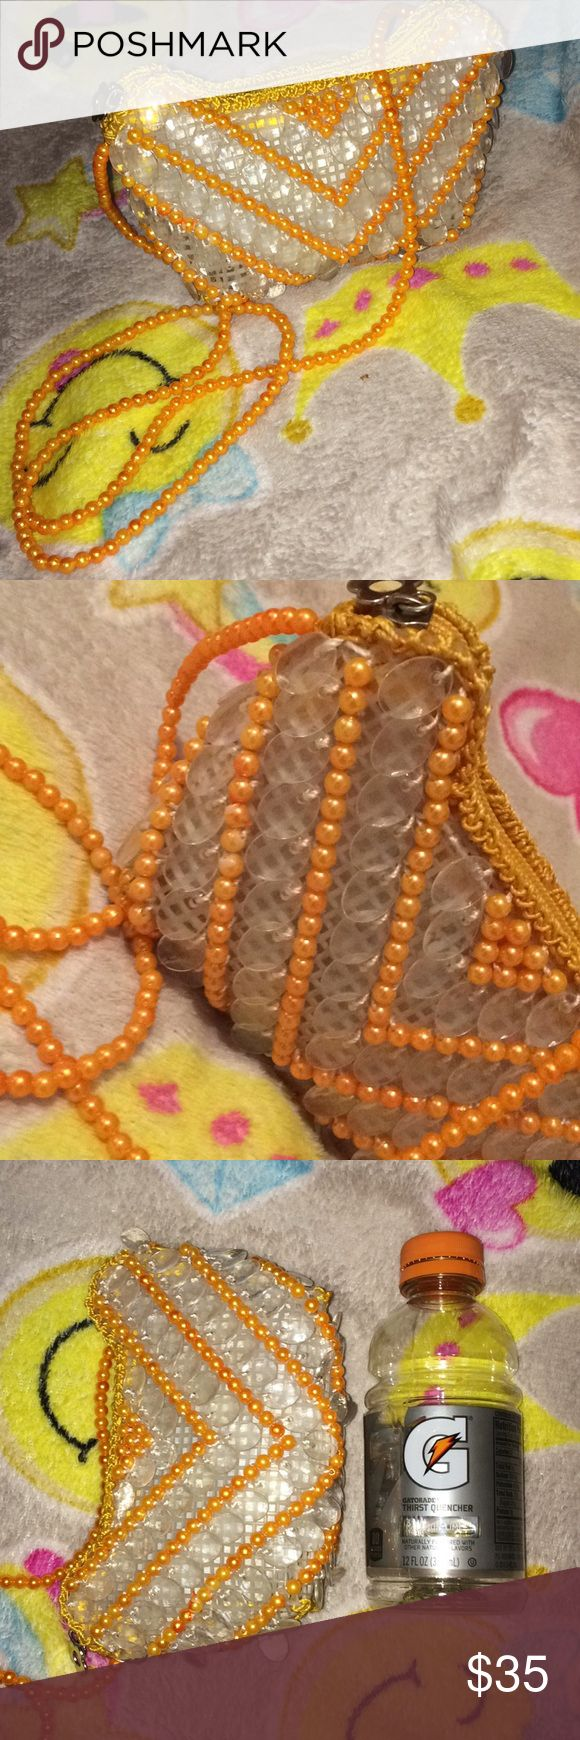 Mini handmade crossbody bag Beautiful mini handmade crossbody bag from Asia😍 Very unique and beautiful!! They were selling them in stores in Asia and the bag is handmade with the beads and everything. It's the size of a 12 oz Gatorade bottle. Colors are orange and clear and white. No Trades! Bags Crossbody Bags